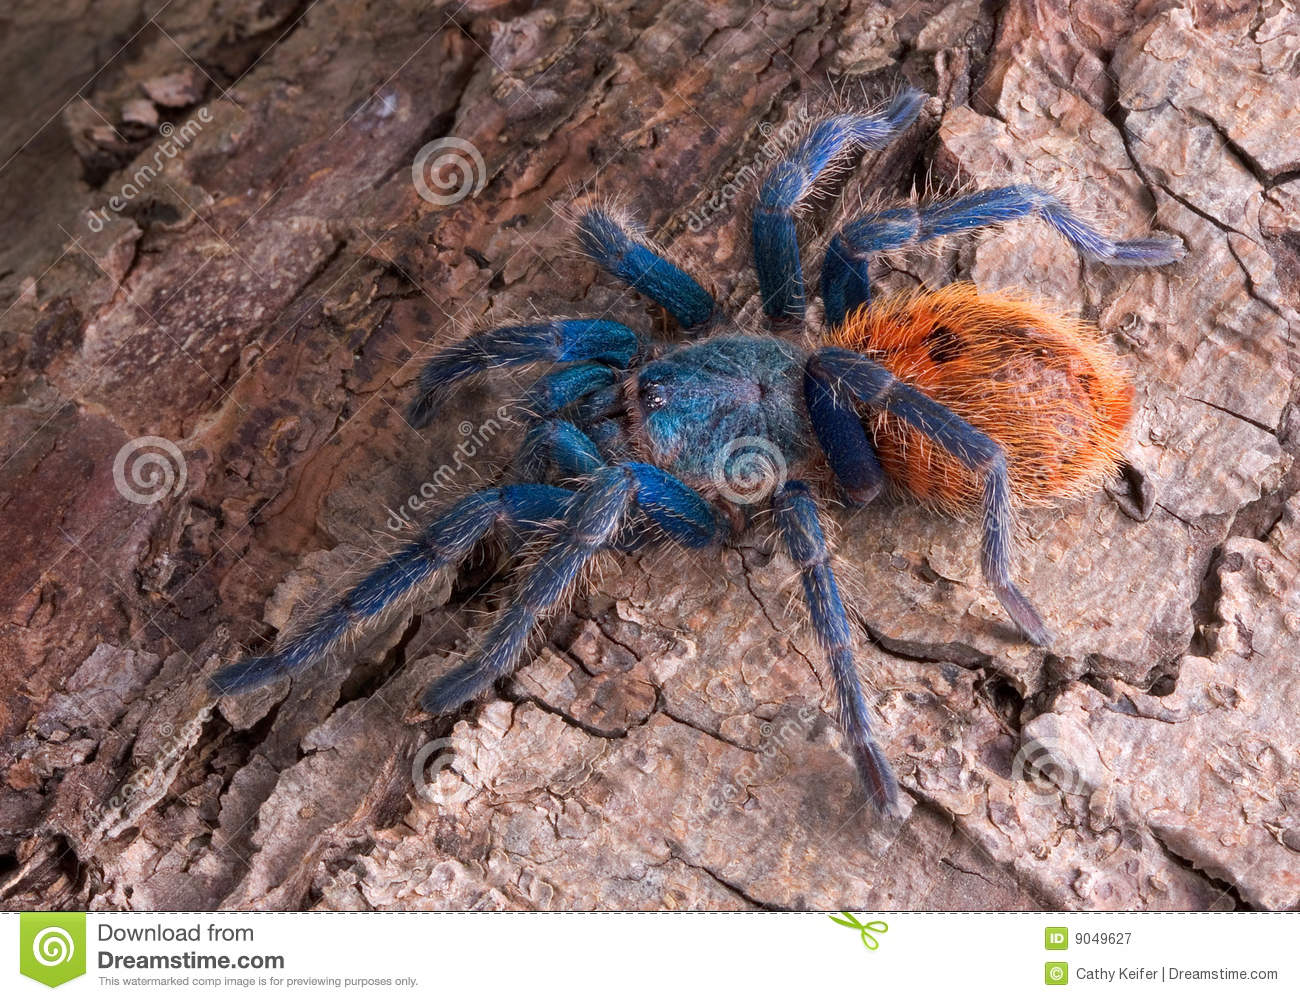 Green Bottle Blue Tarantula Web | www.imgkid.com - The ...